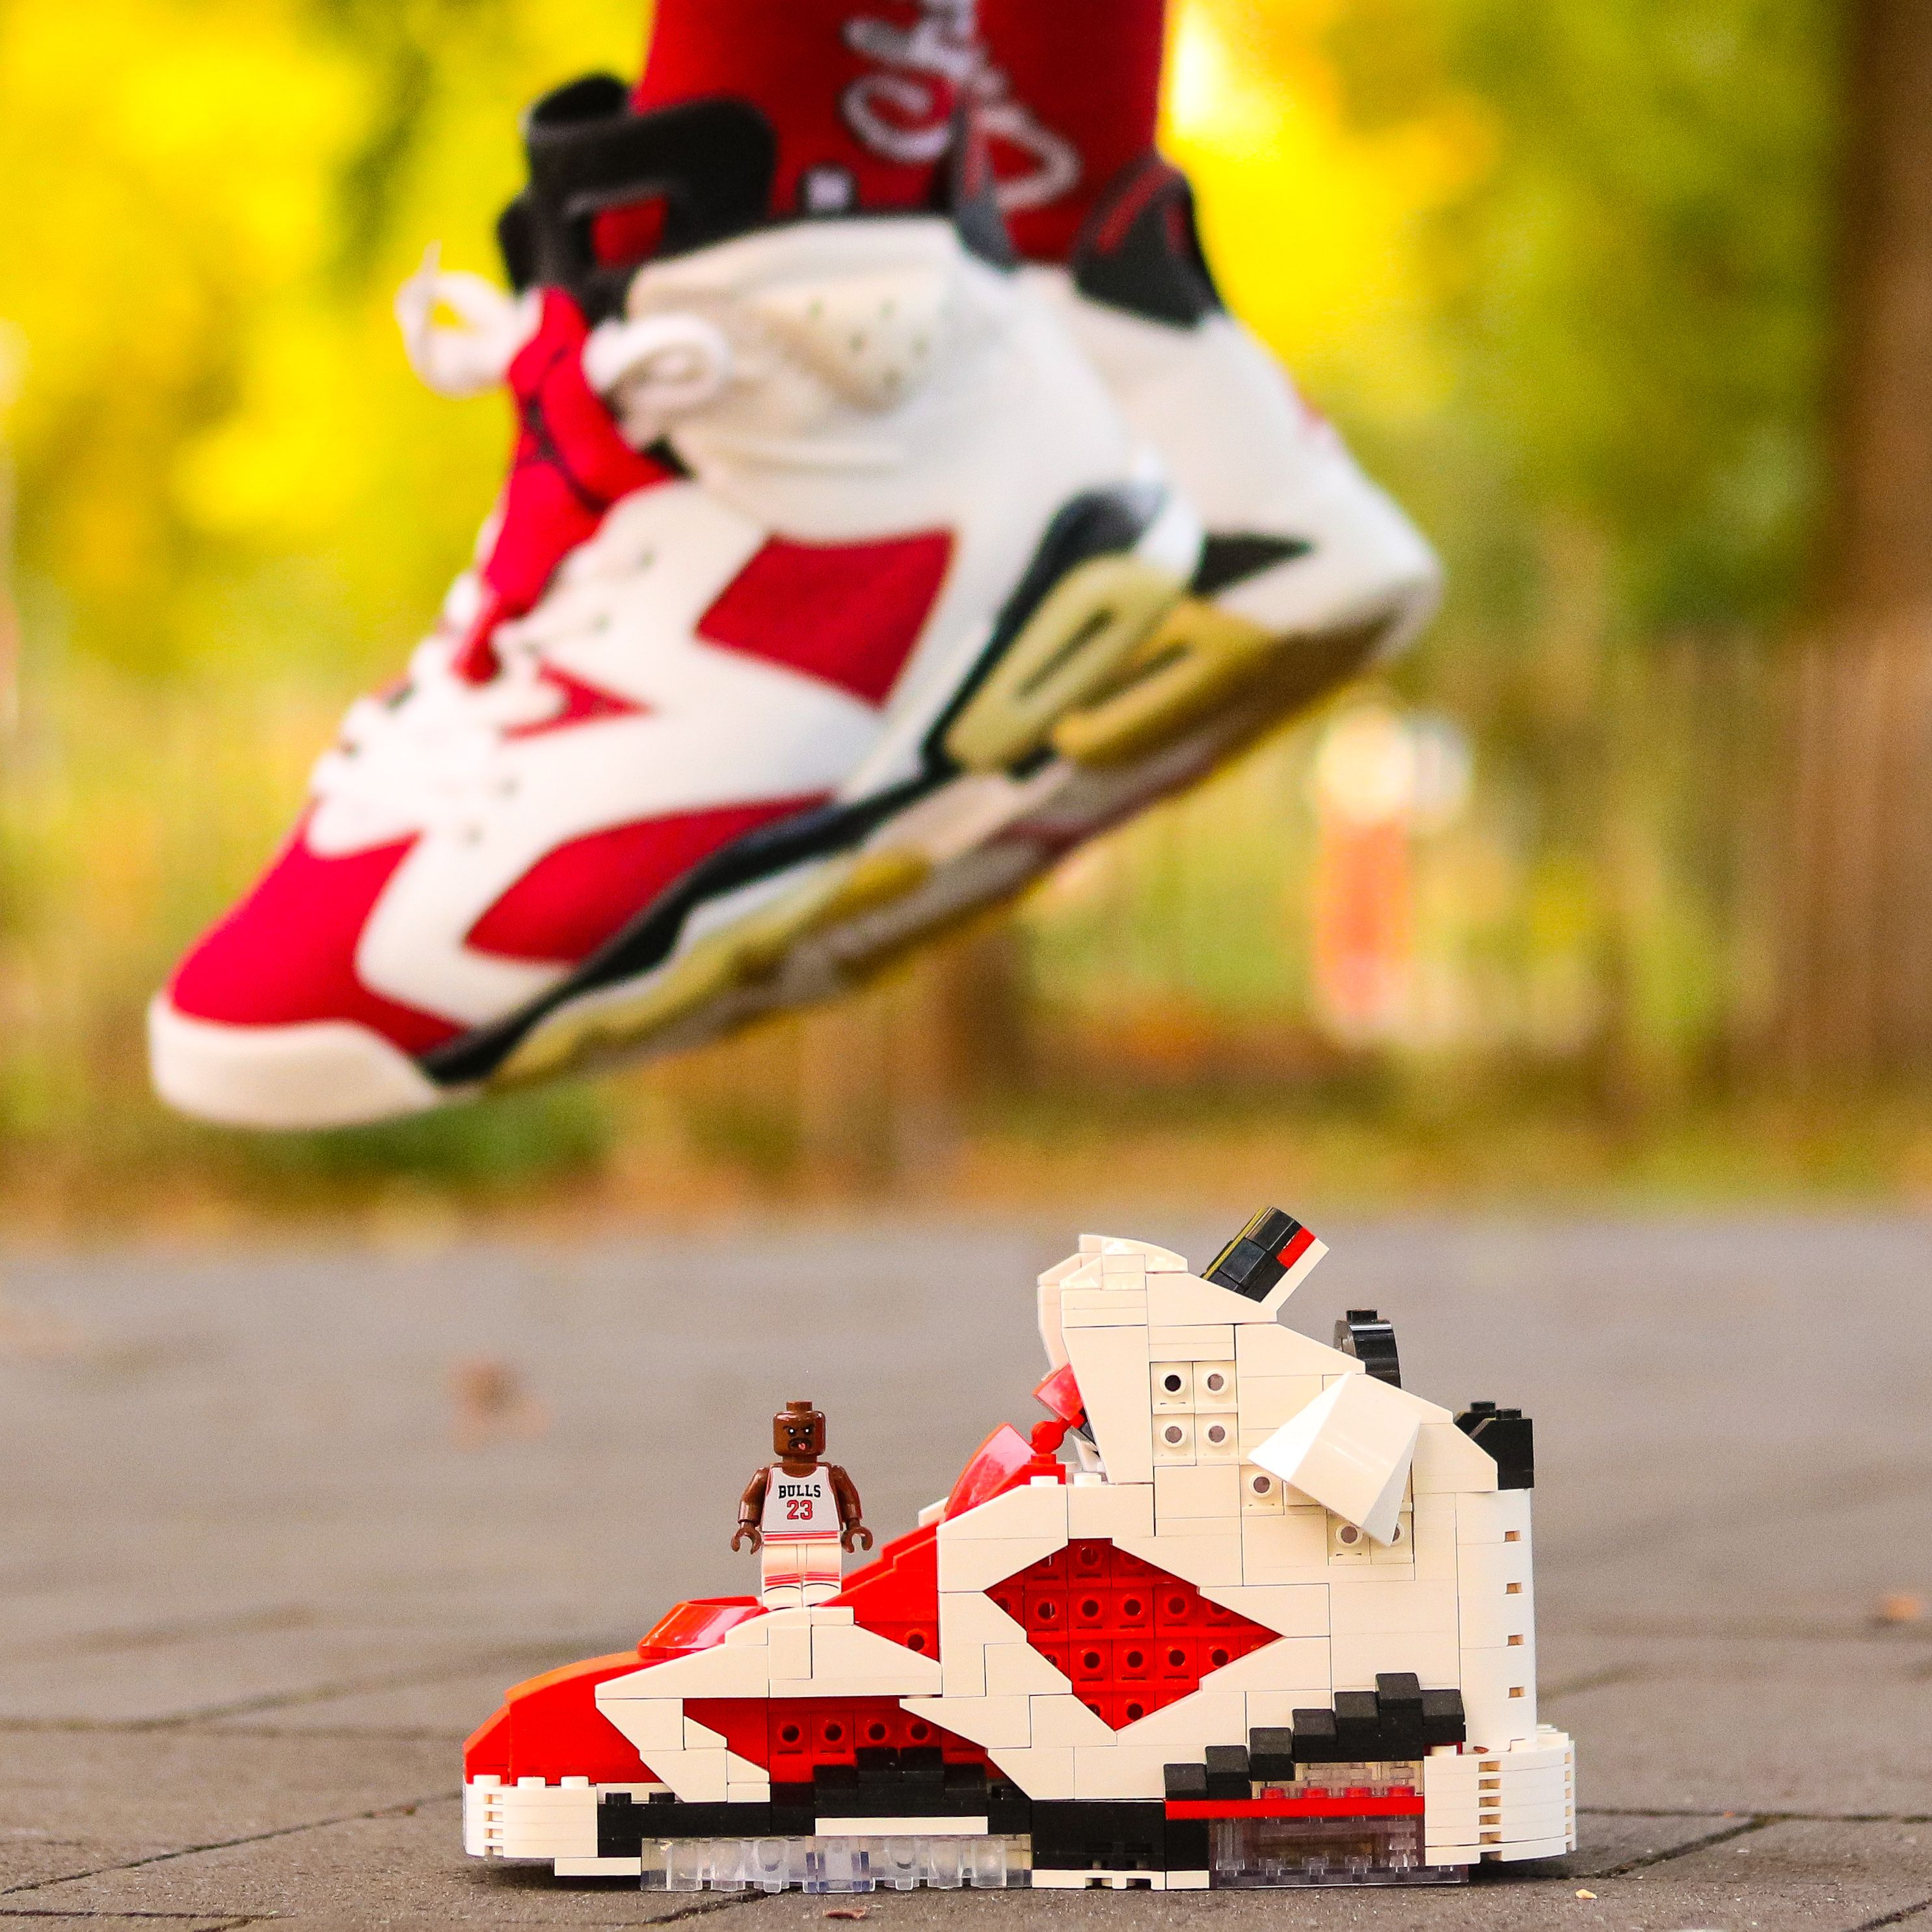 Handcrafted Air Jordan 6 Carmine Lego Puzzle Display Set Kicksmini Carmine Sneakers Handcraft